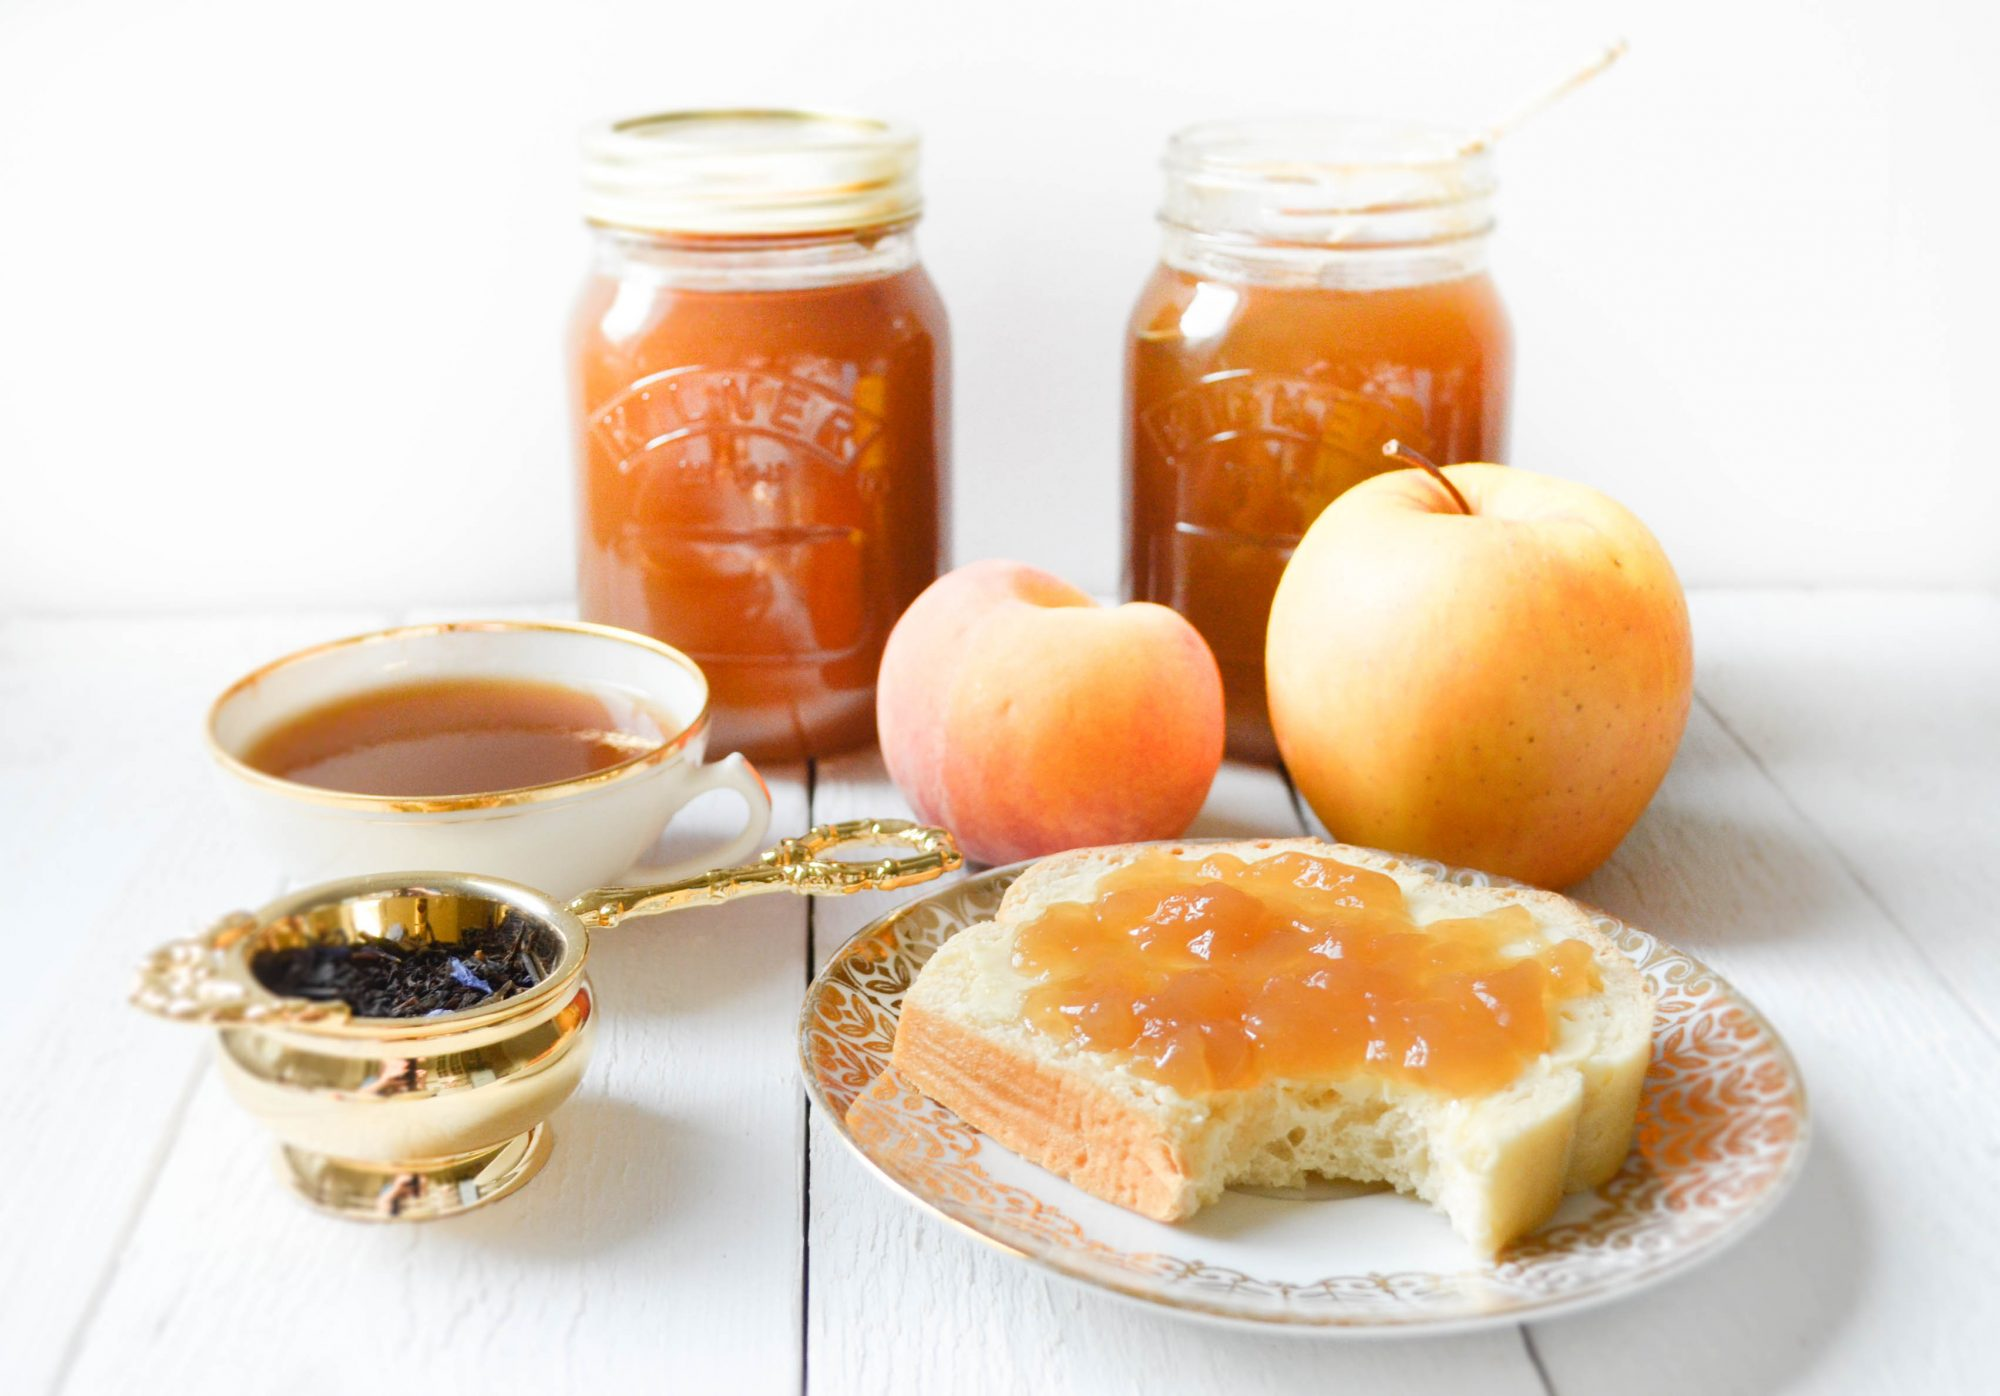 gellee de the afternoon earl grey agar agar pomme peche whittard mason kilner jar bergamote